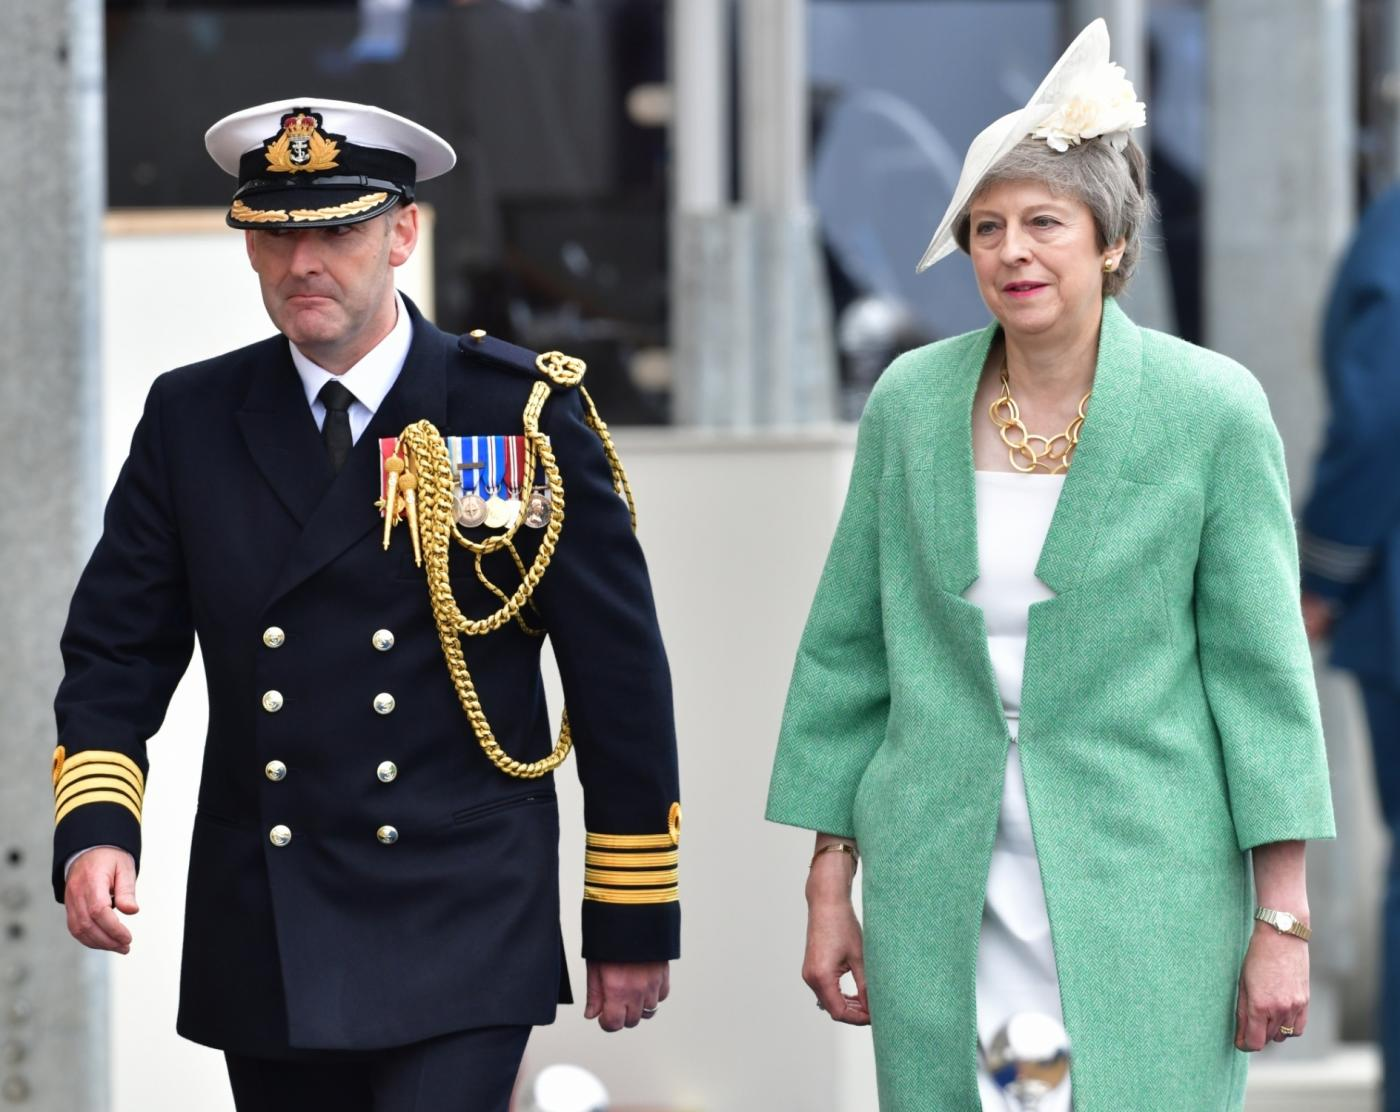 PORTSMOUTH (BRITAIN), June 5, 2019 (Xinhua) -- British Prime Minister Theresa May (R) attends the D-Day commemorations in Portsmouth, Britain, on June 5, 2019. British Prime Minister Theresa May and 15 world leaders joined Queen Elizabeth II in the English naval port city of Portsmouth Wednesday to commemorate the 75th anniversary of the D-Day landings. (Xinhua/IANS) by .